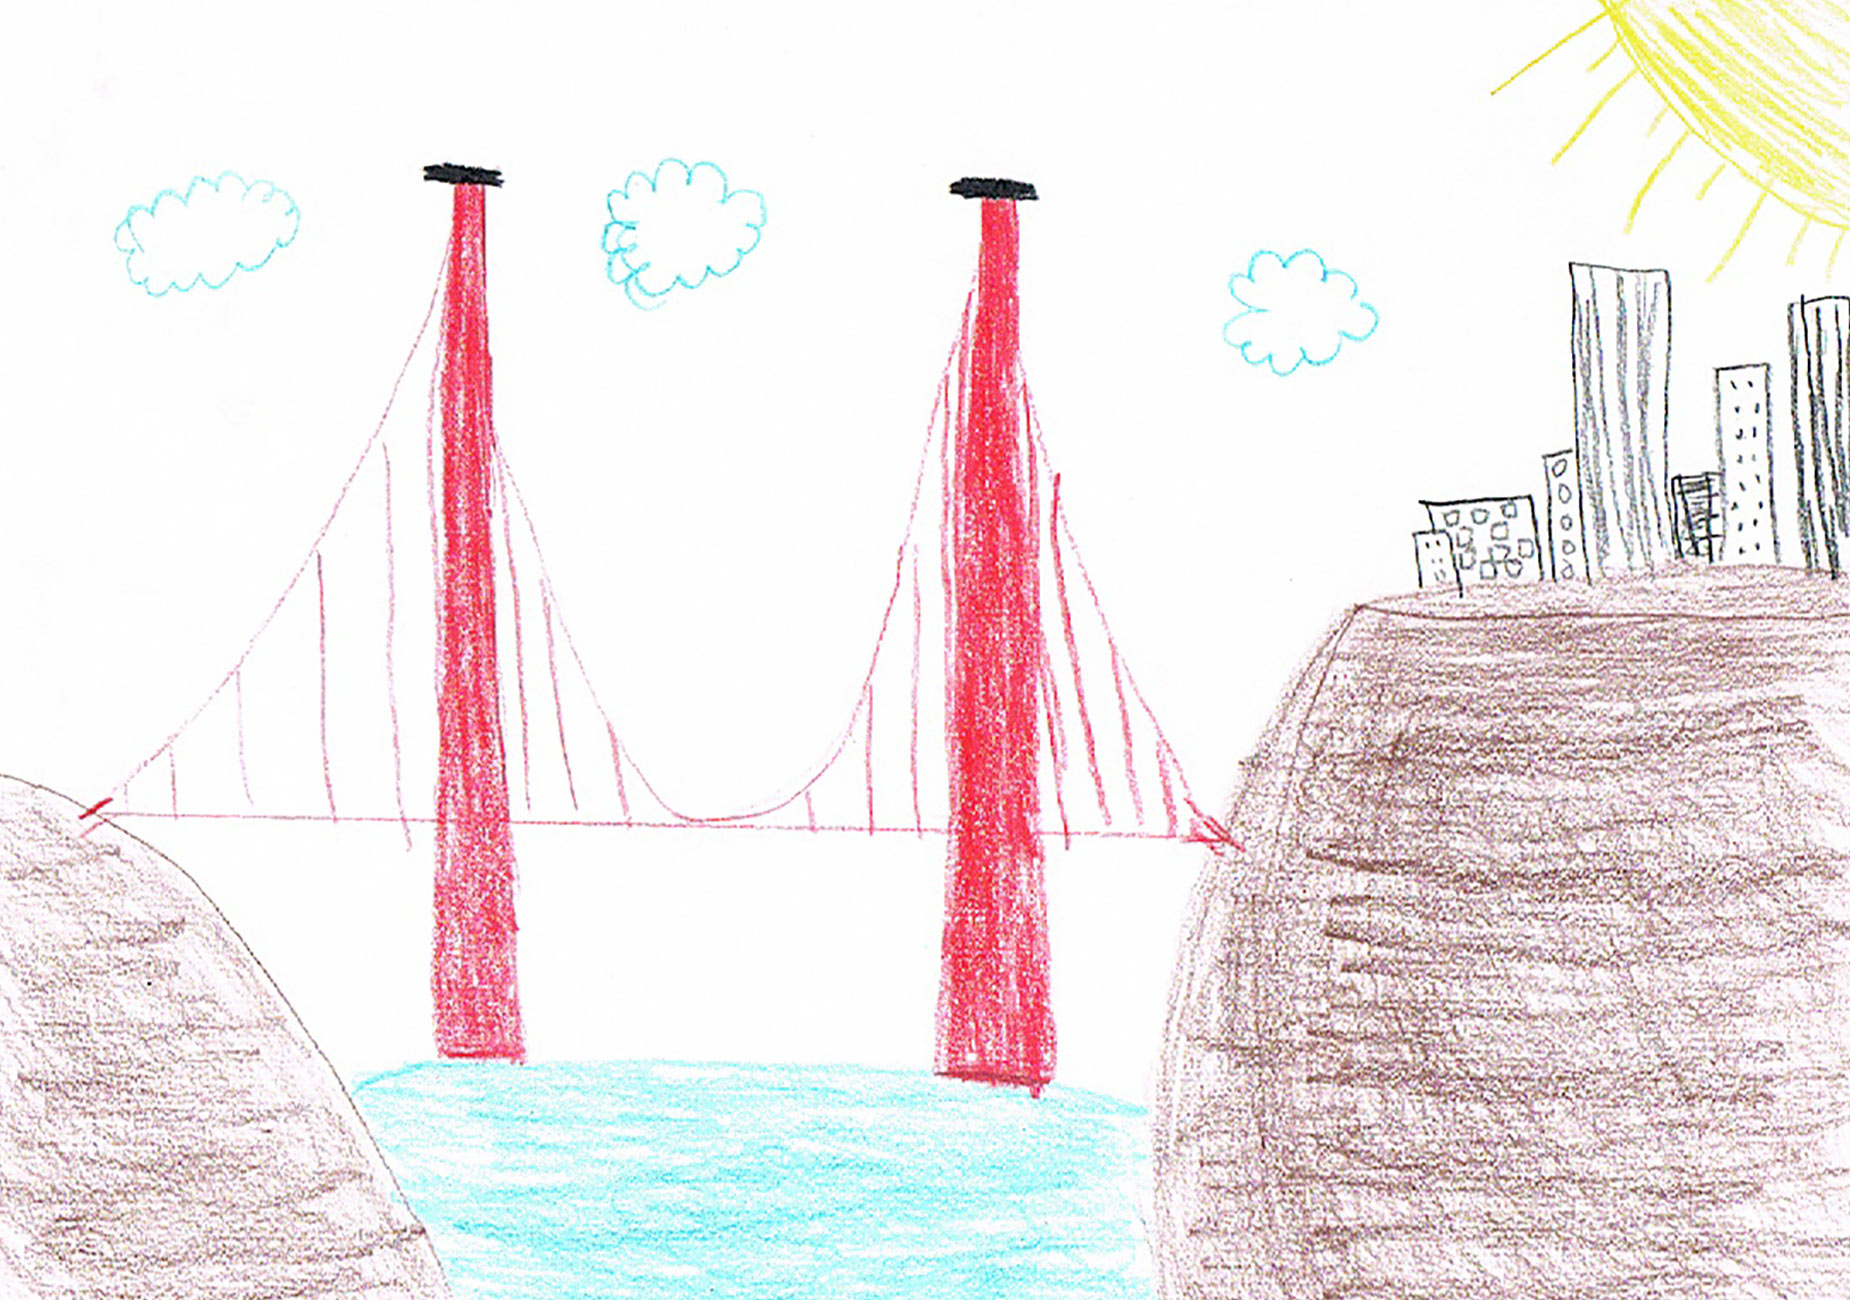 Reimagining  Kids' Construction Drawings in Real Life